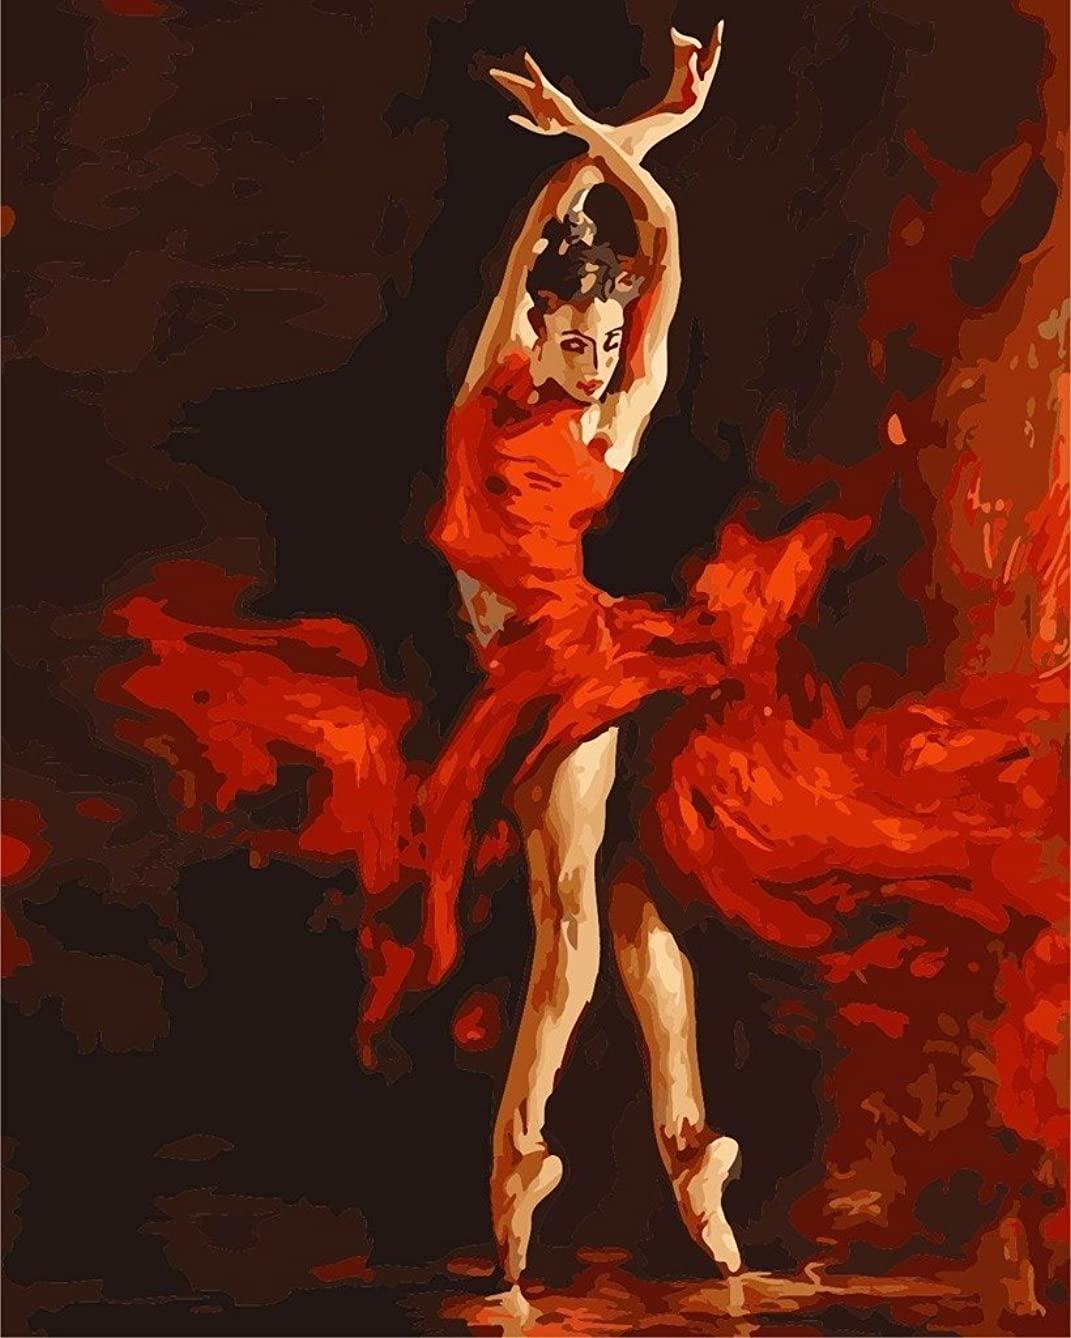 CaptainCrafts New Paint by Number Kits - Dancer Ballet Ballerina Red Fire Girl 16x20 inch - Diy Painting by Numbers for Adults Beginner Kids (Frameless)